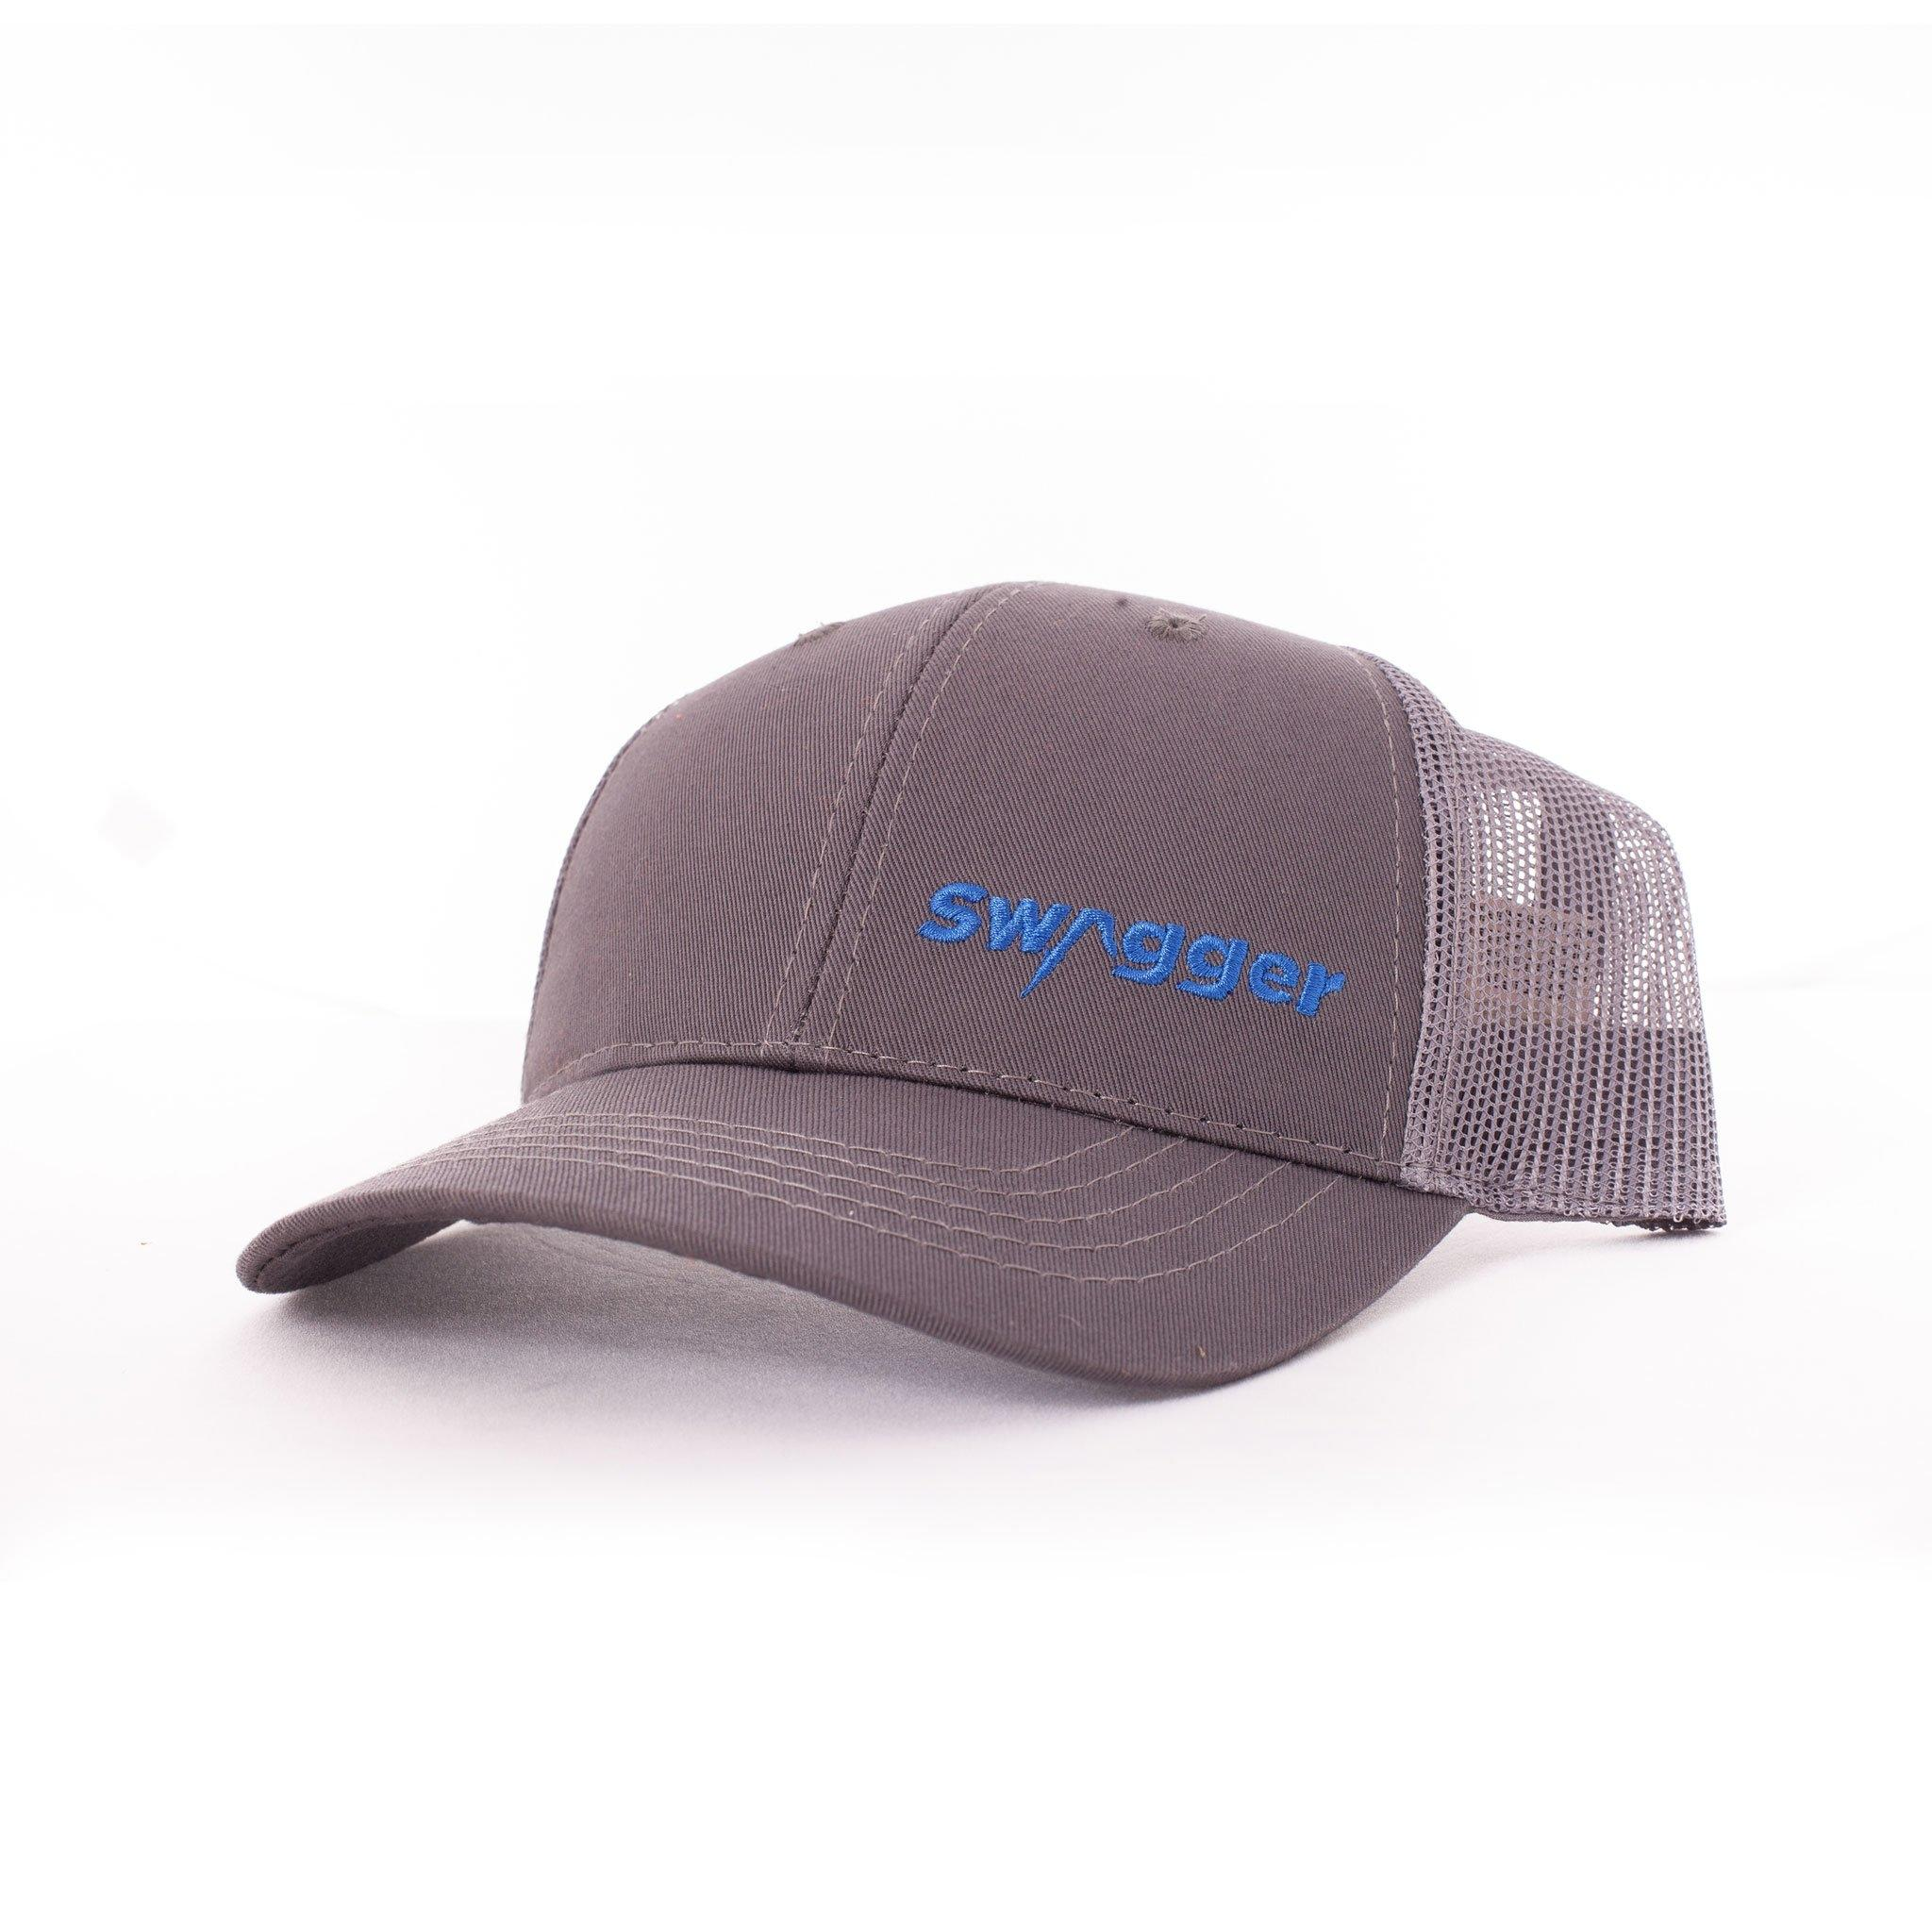 Swagger Brand Hat